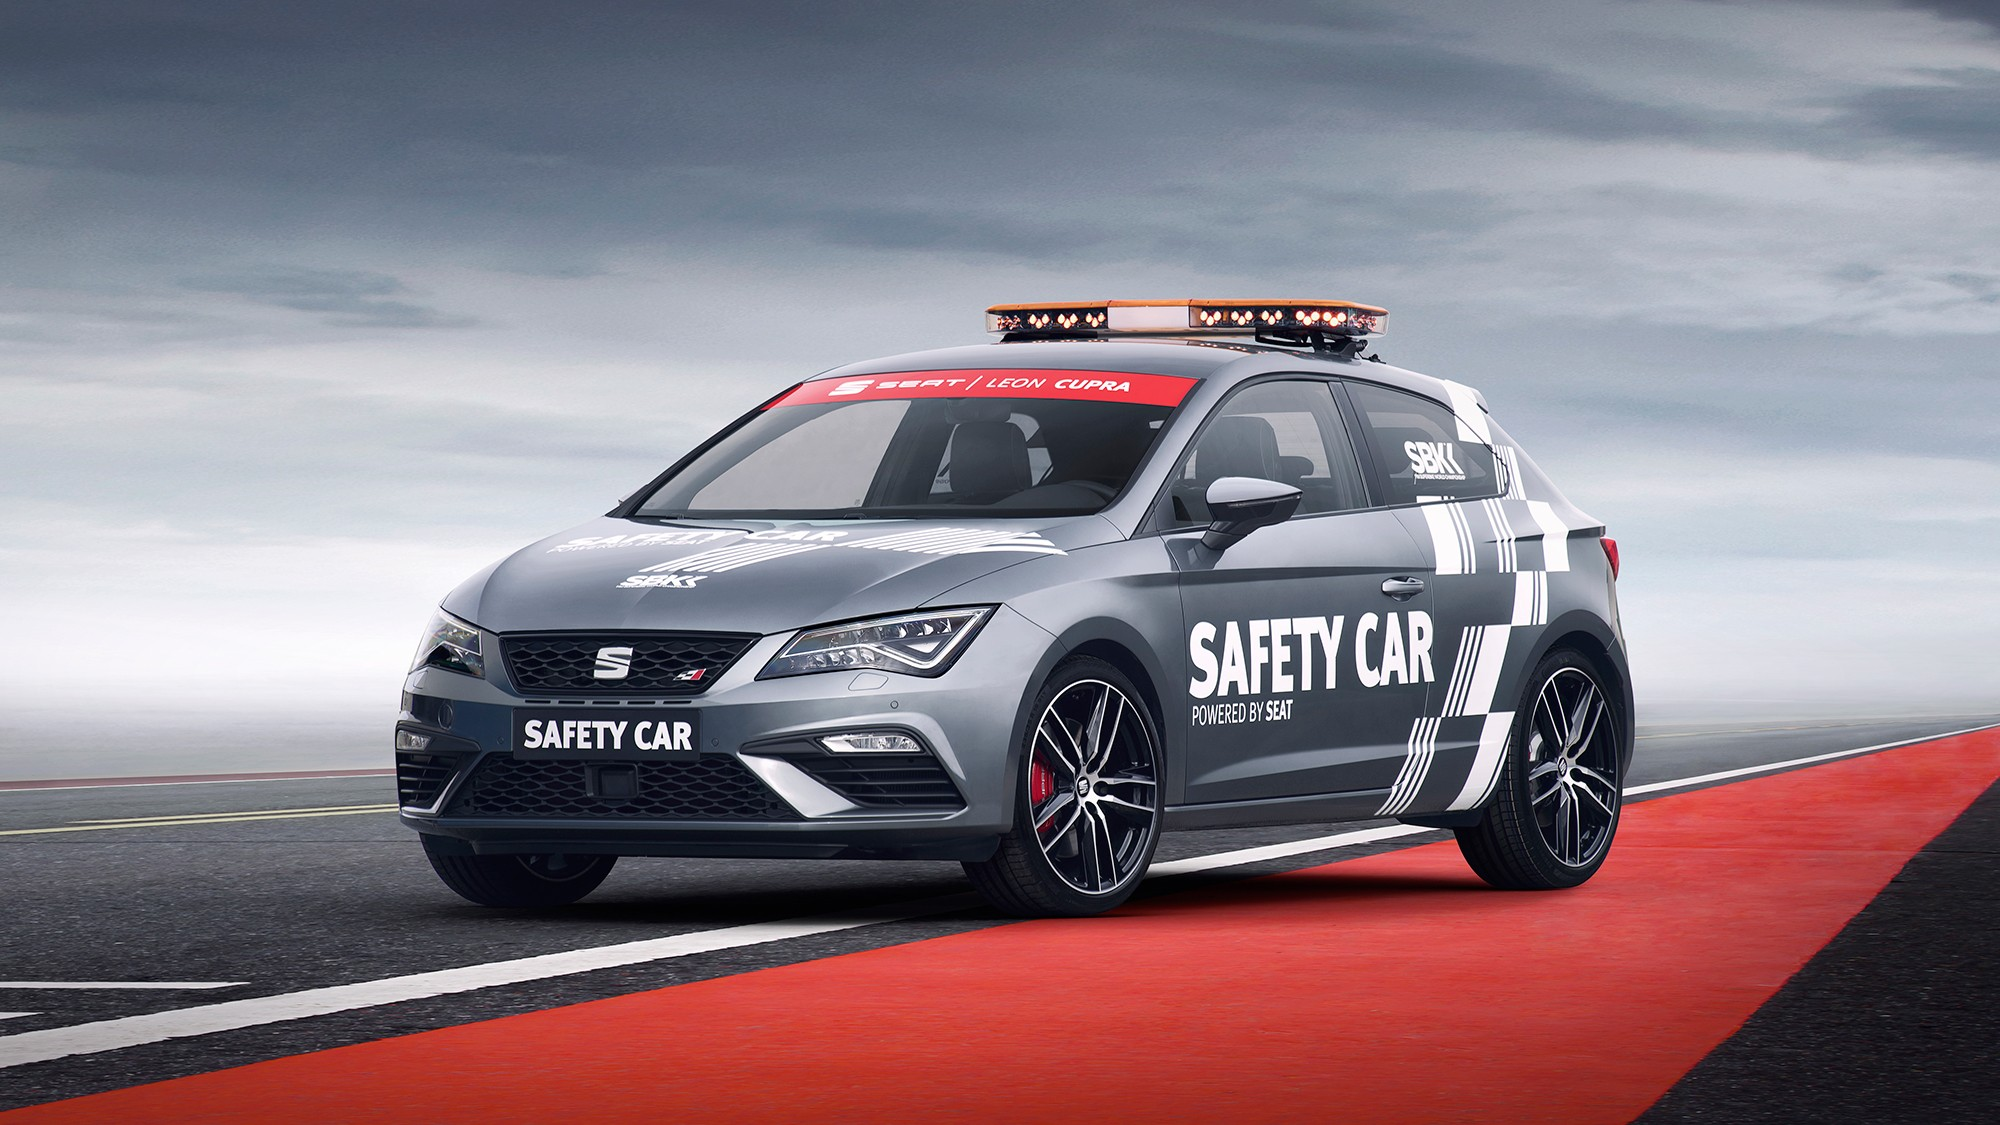 The Leon Cupra Most Ful Model In Seat History Will Be Official Safety Car Of Worldsbk